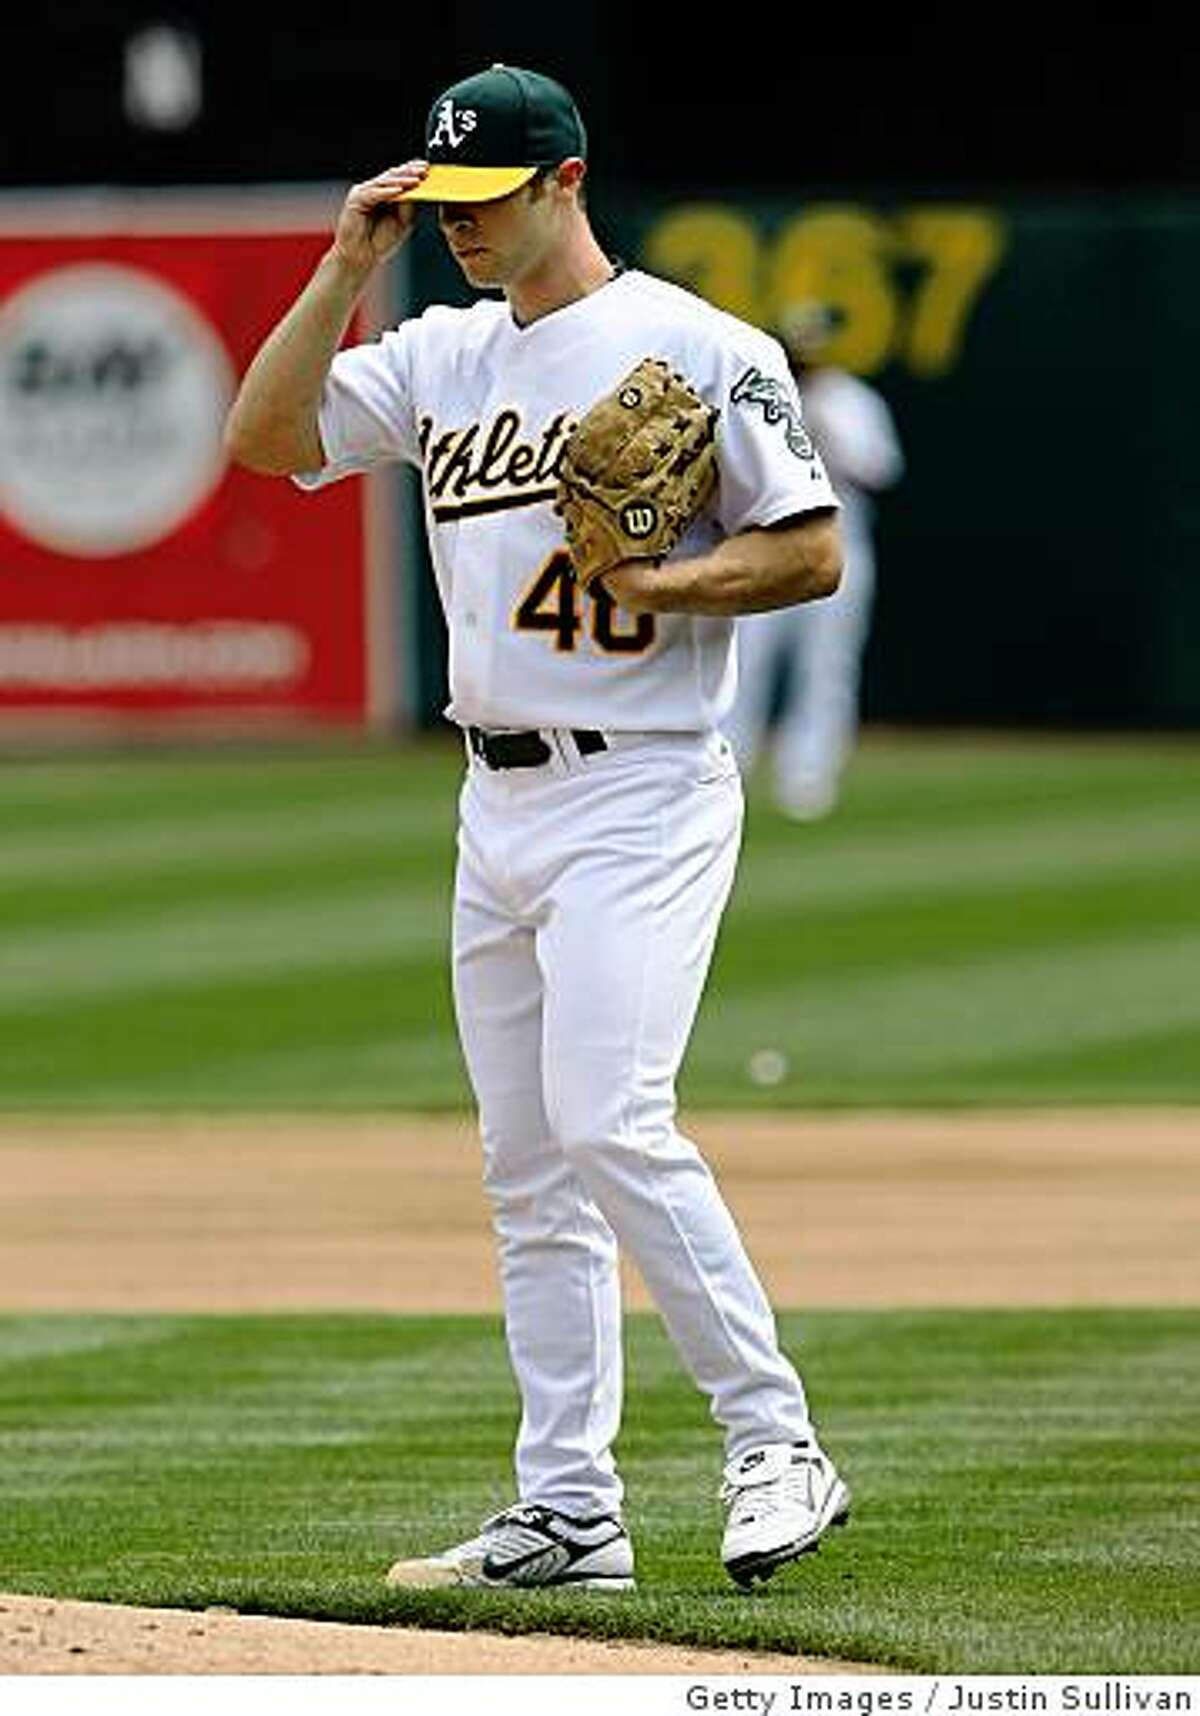 OAKLAND, CA - APRIL 02: Rich Harden #40 of the Oakland Athletics adjusts his hat as he pitches against the Boston Red Sox during the first inning at the McAfee Coliseum April 2, 2008 in Oakland, California. (Photo by Justin Sullivan/Getty Images)